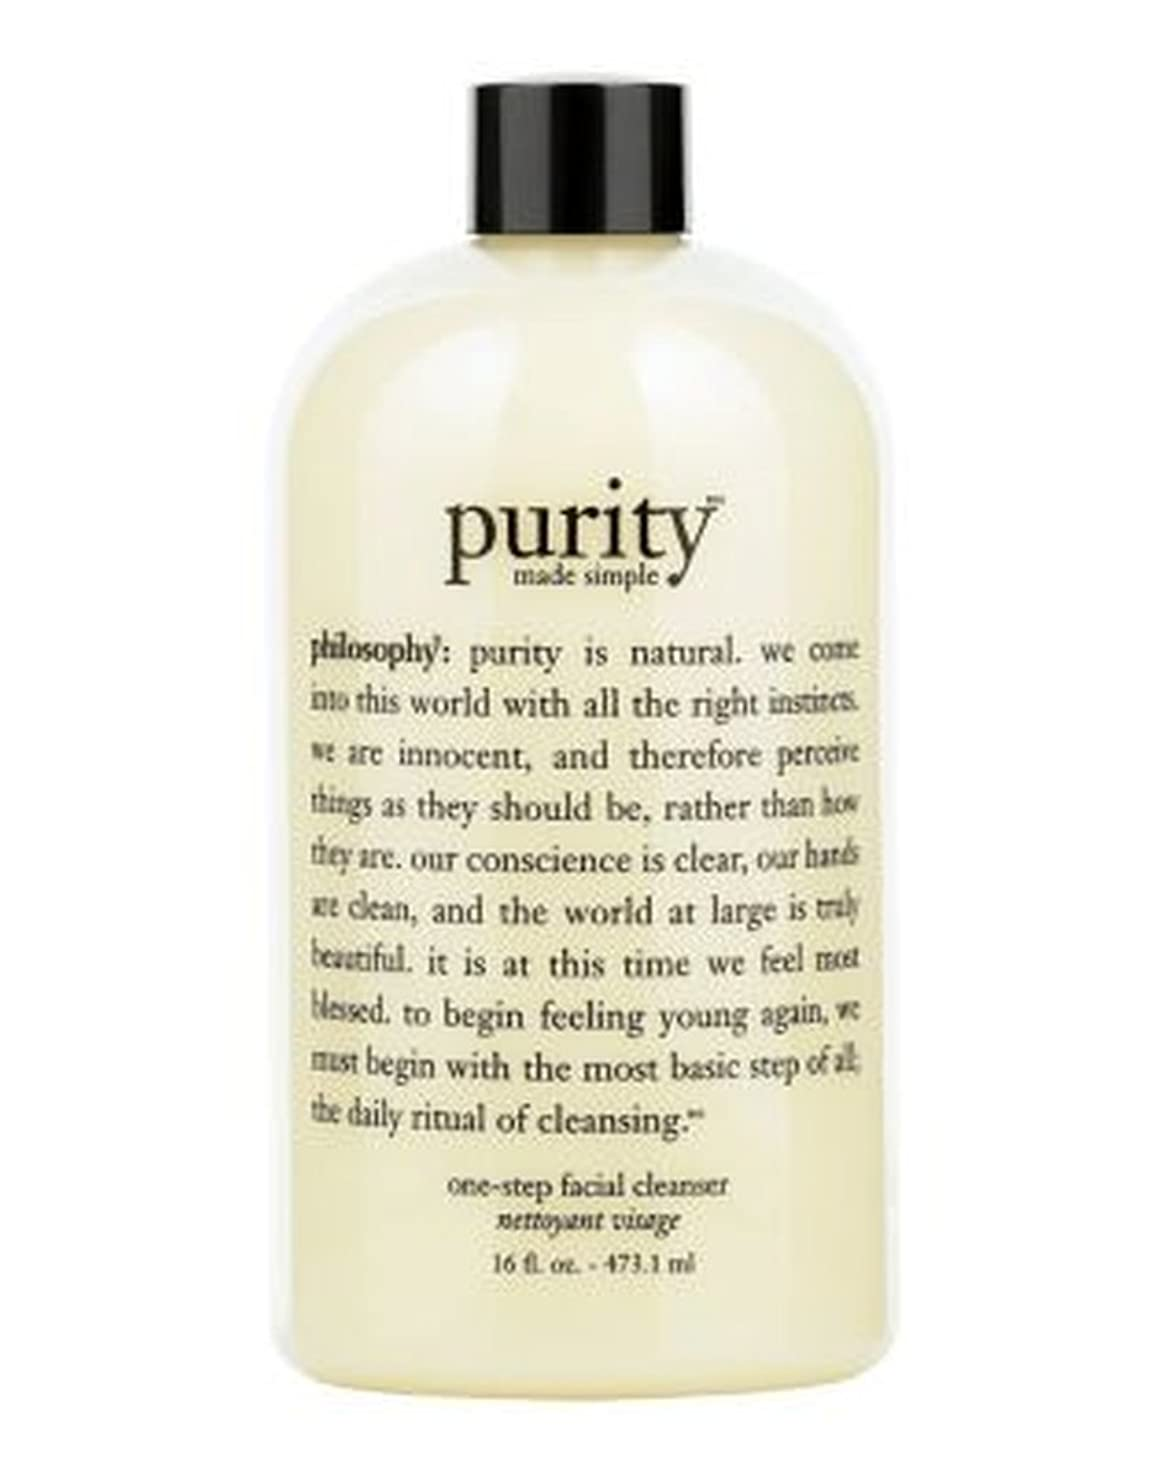 philosophy purity made simple 3-in-1 cleanser for face and eyes 480ml - 哲学純度は、顔や目480ミリリットルのための簡単な3イン1クレンザーを作りました (Philosophy) [並行輸入品]